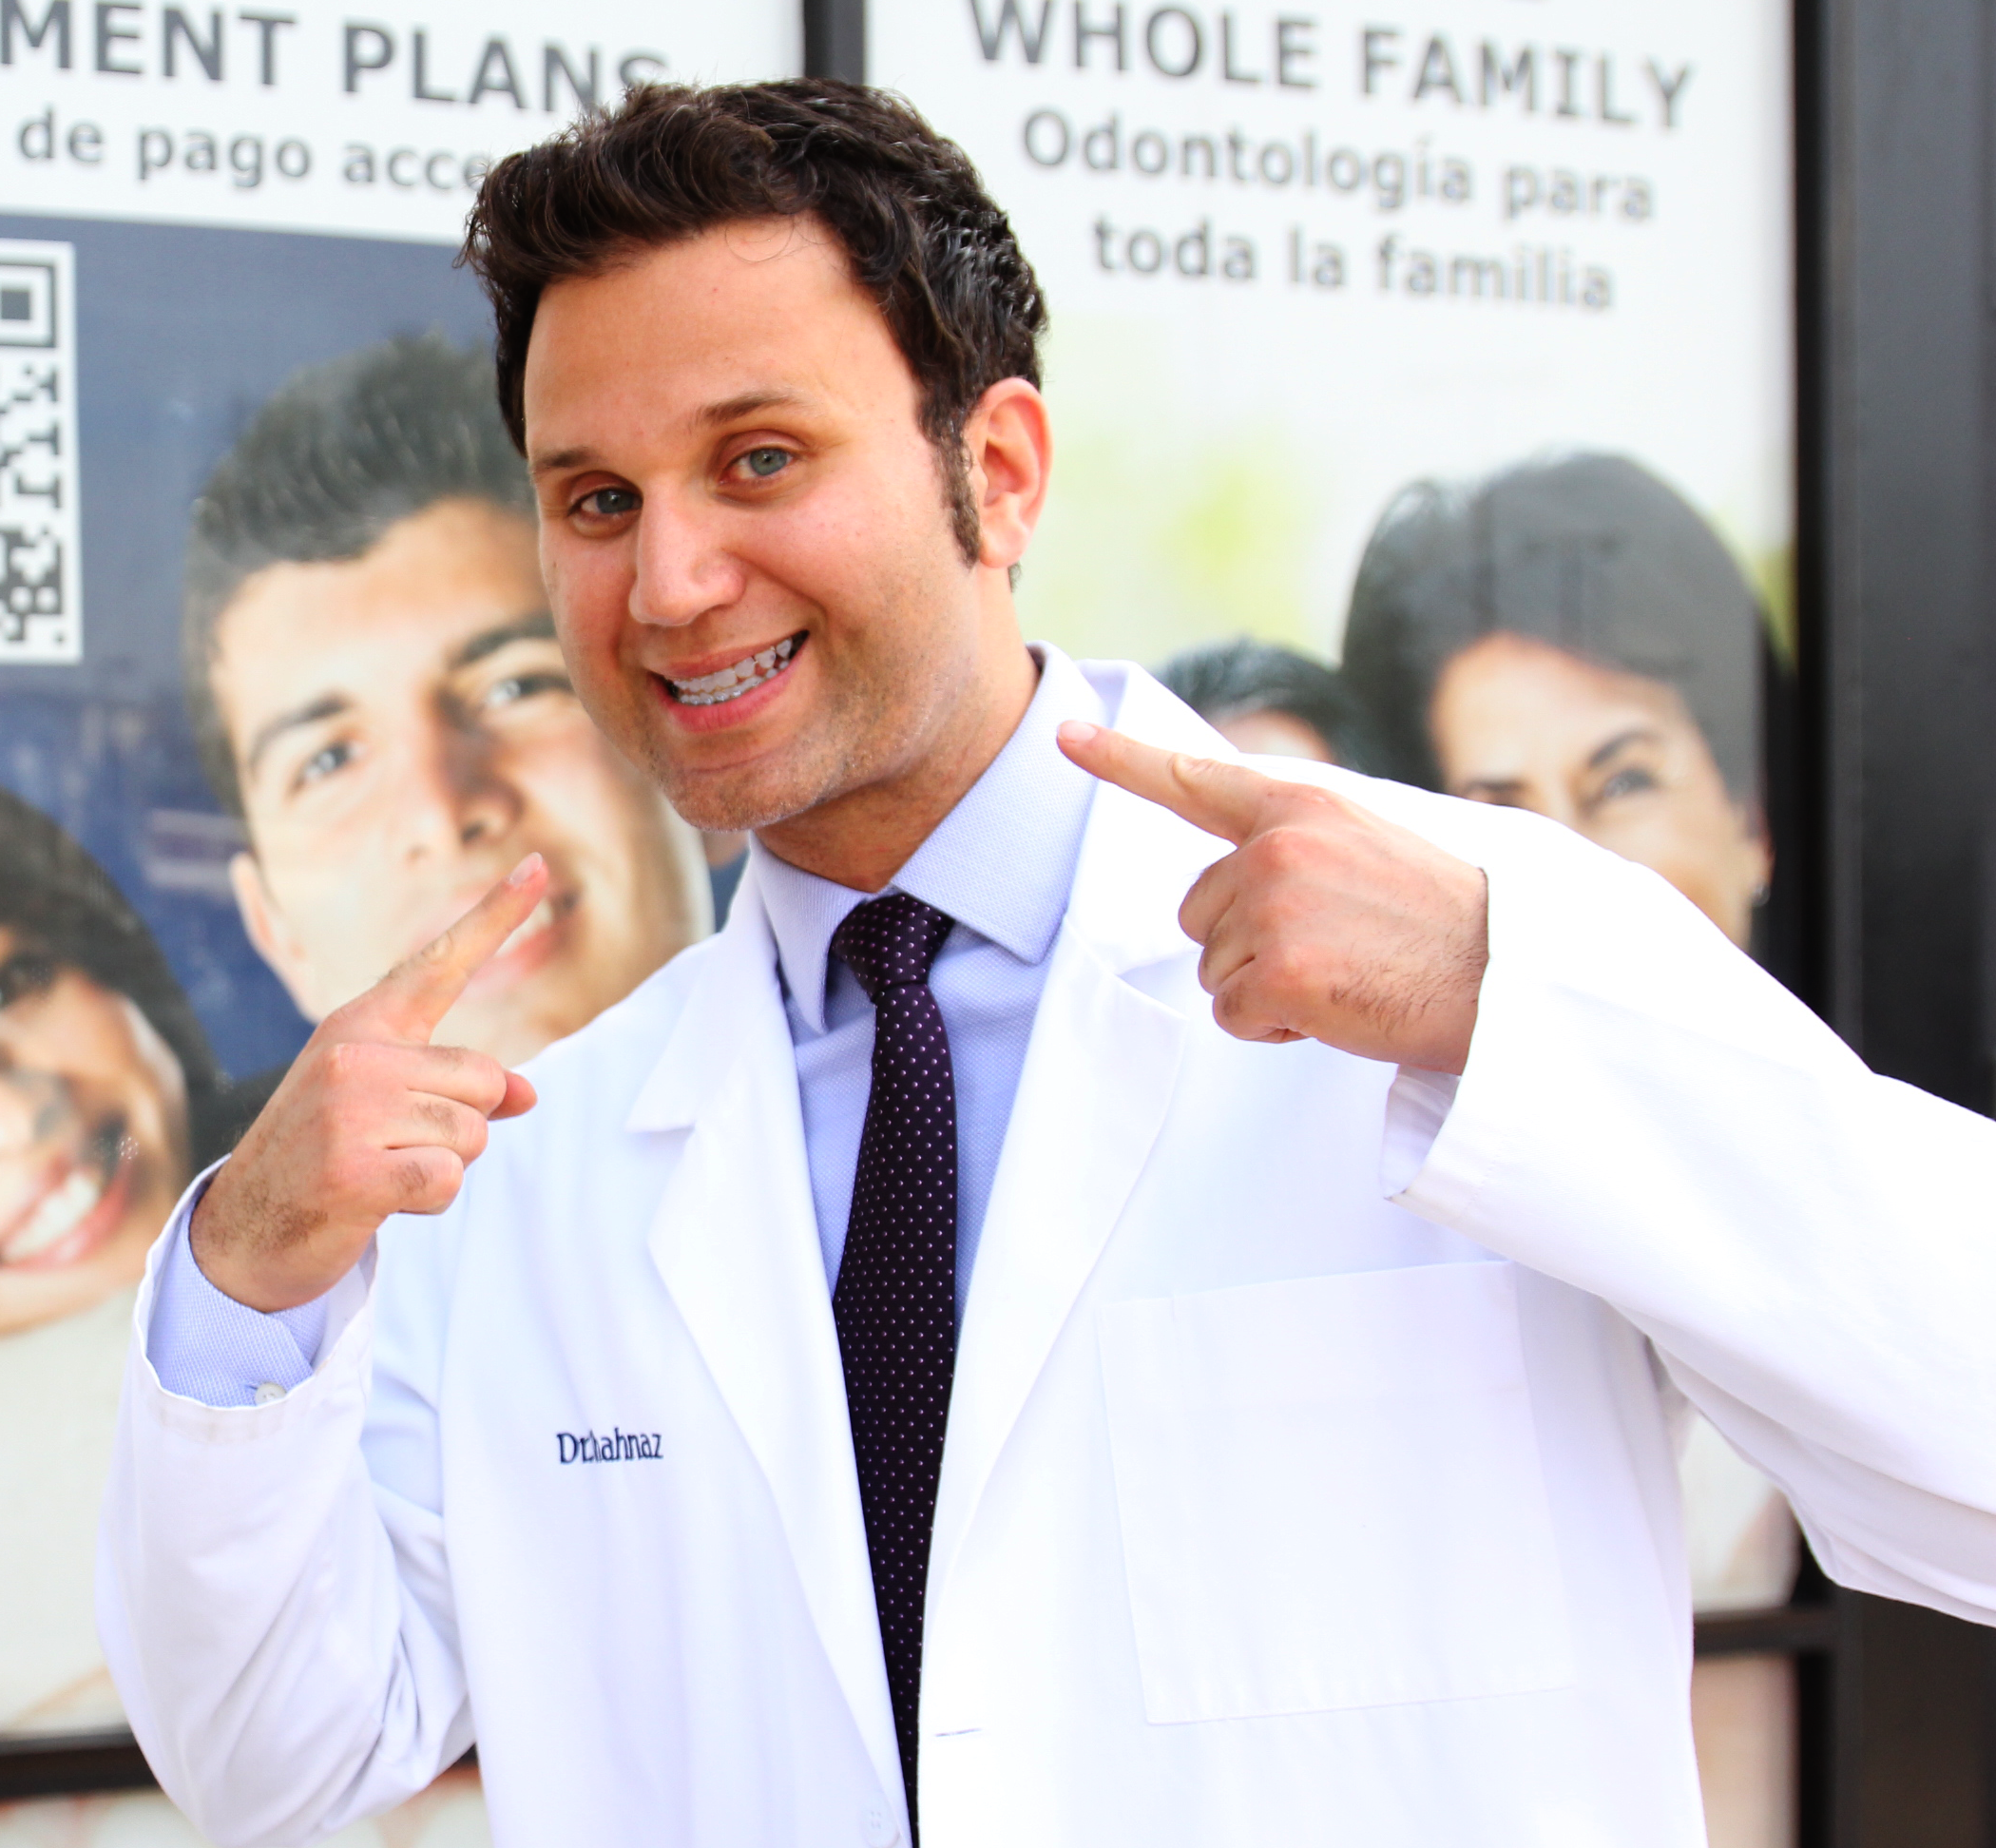 Our very own, Dr. Shanaz showing off his braces!